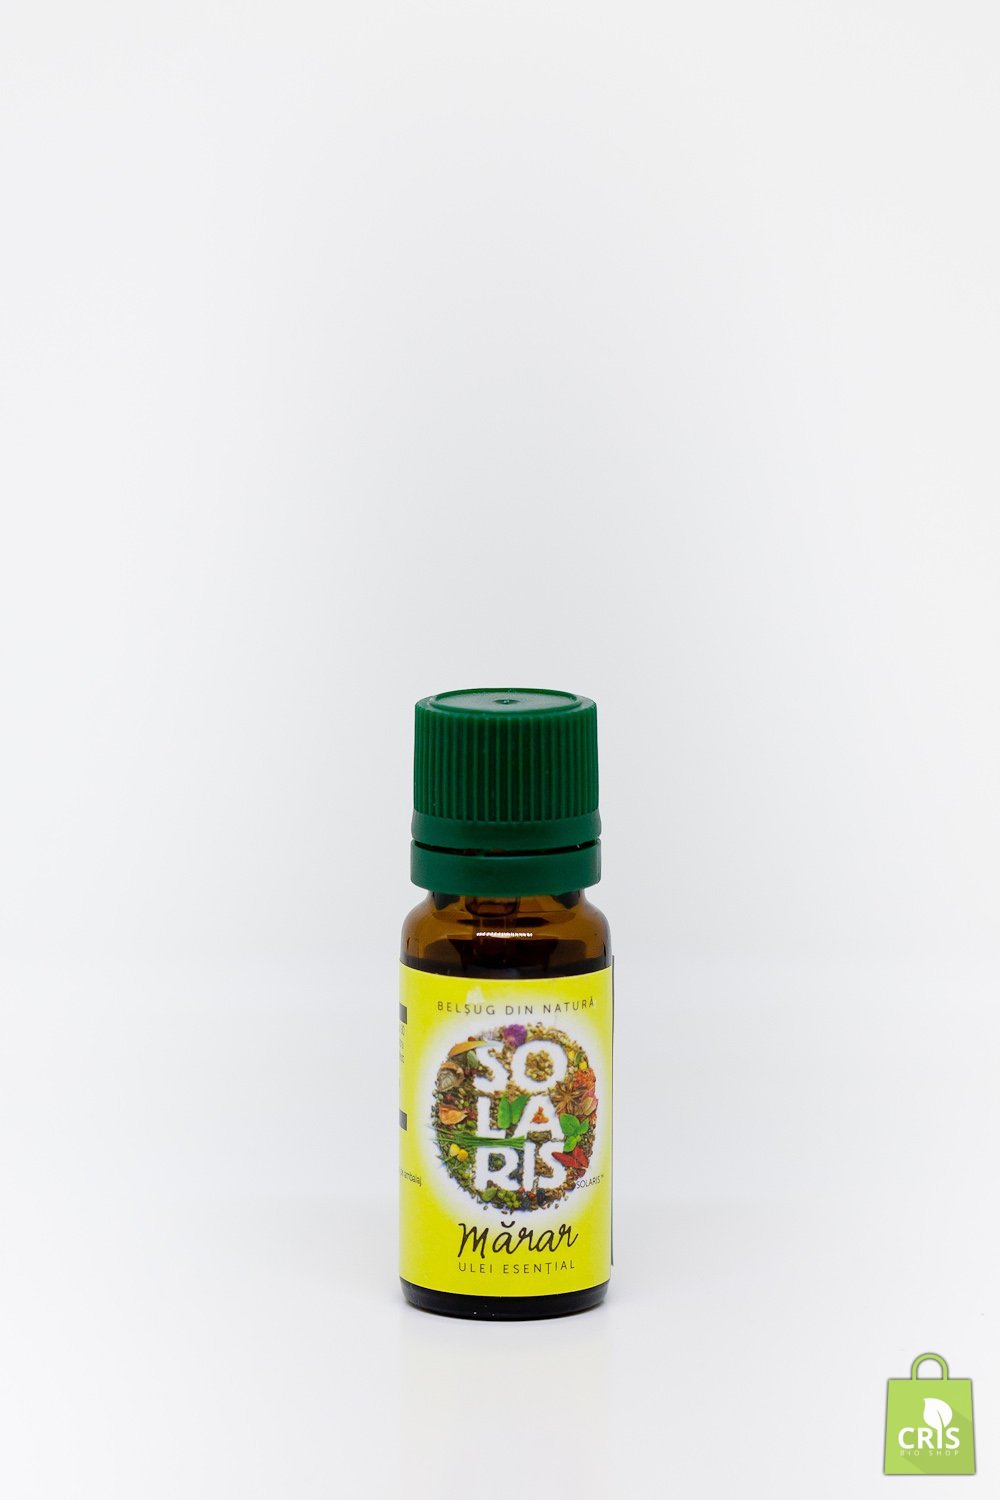 Ulei volatil de marar 10ml - Solaris